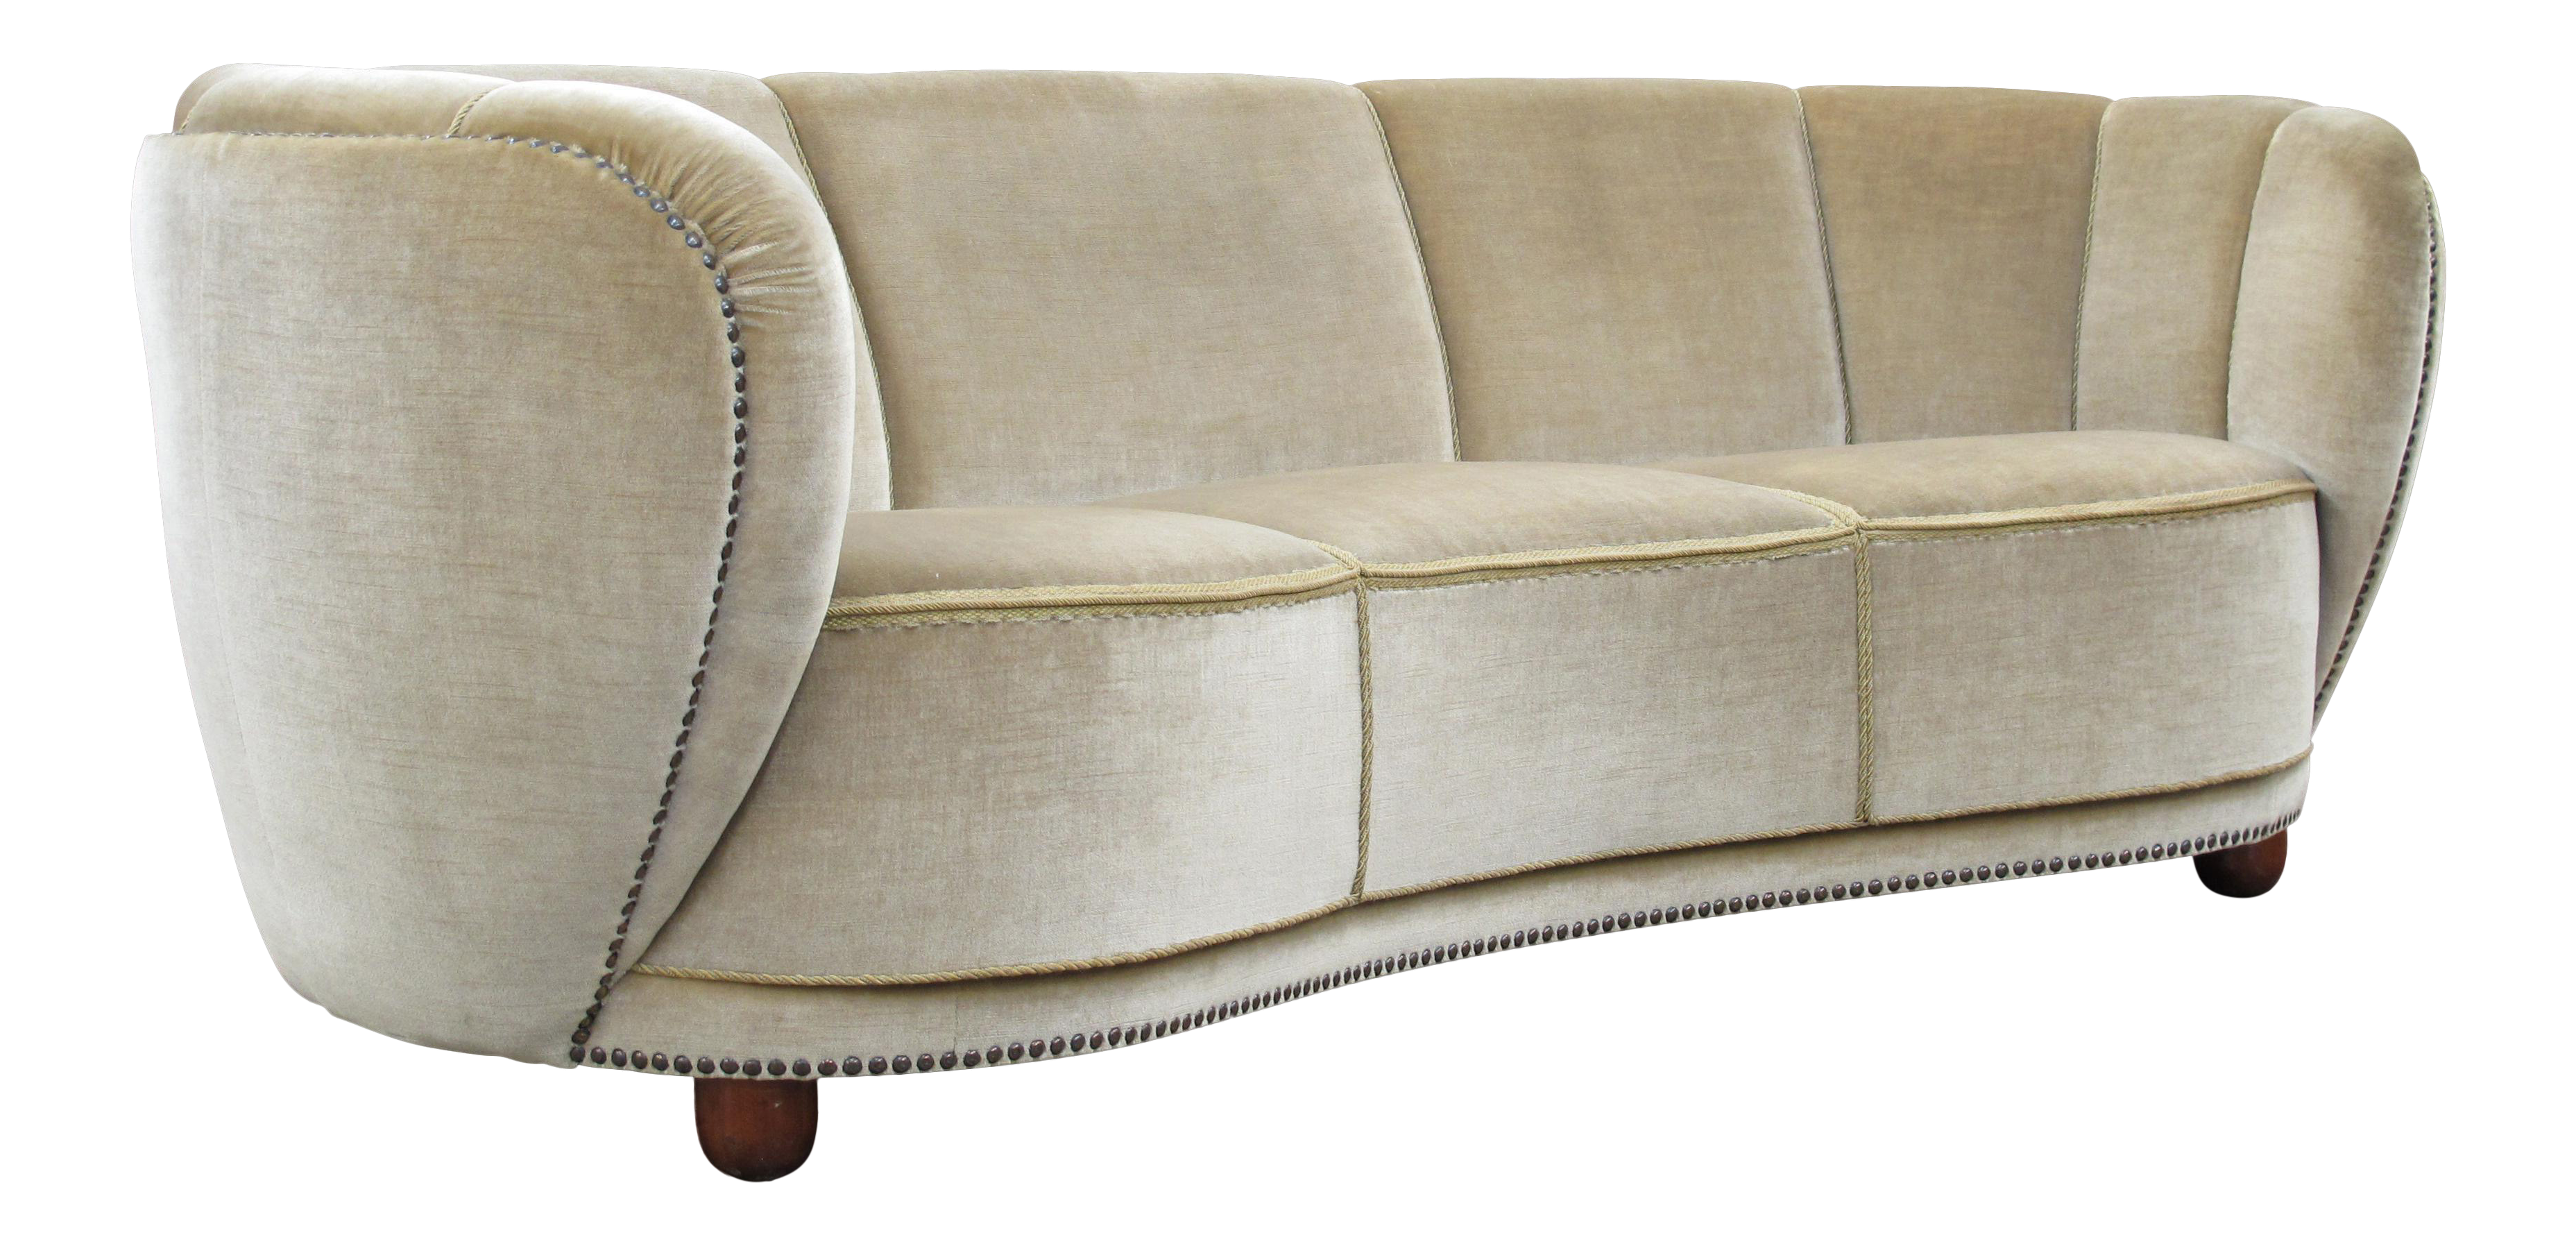 Astonishing Mohair Sofa Home And Textiles Lamtechconsult Wood Chair Design Ideas Lamtechconsultcom